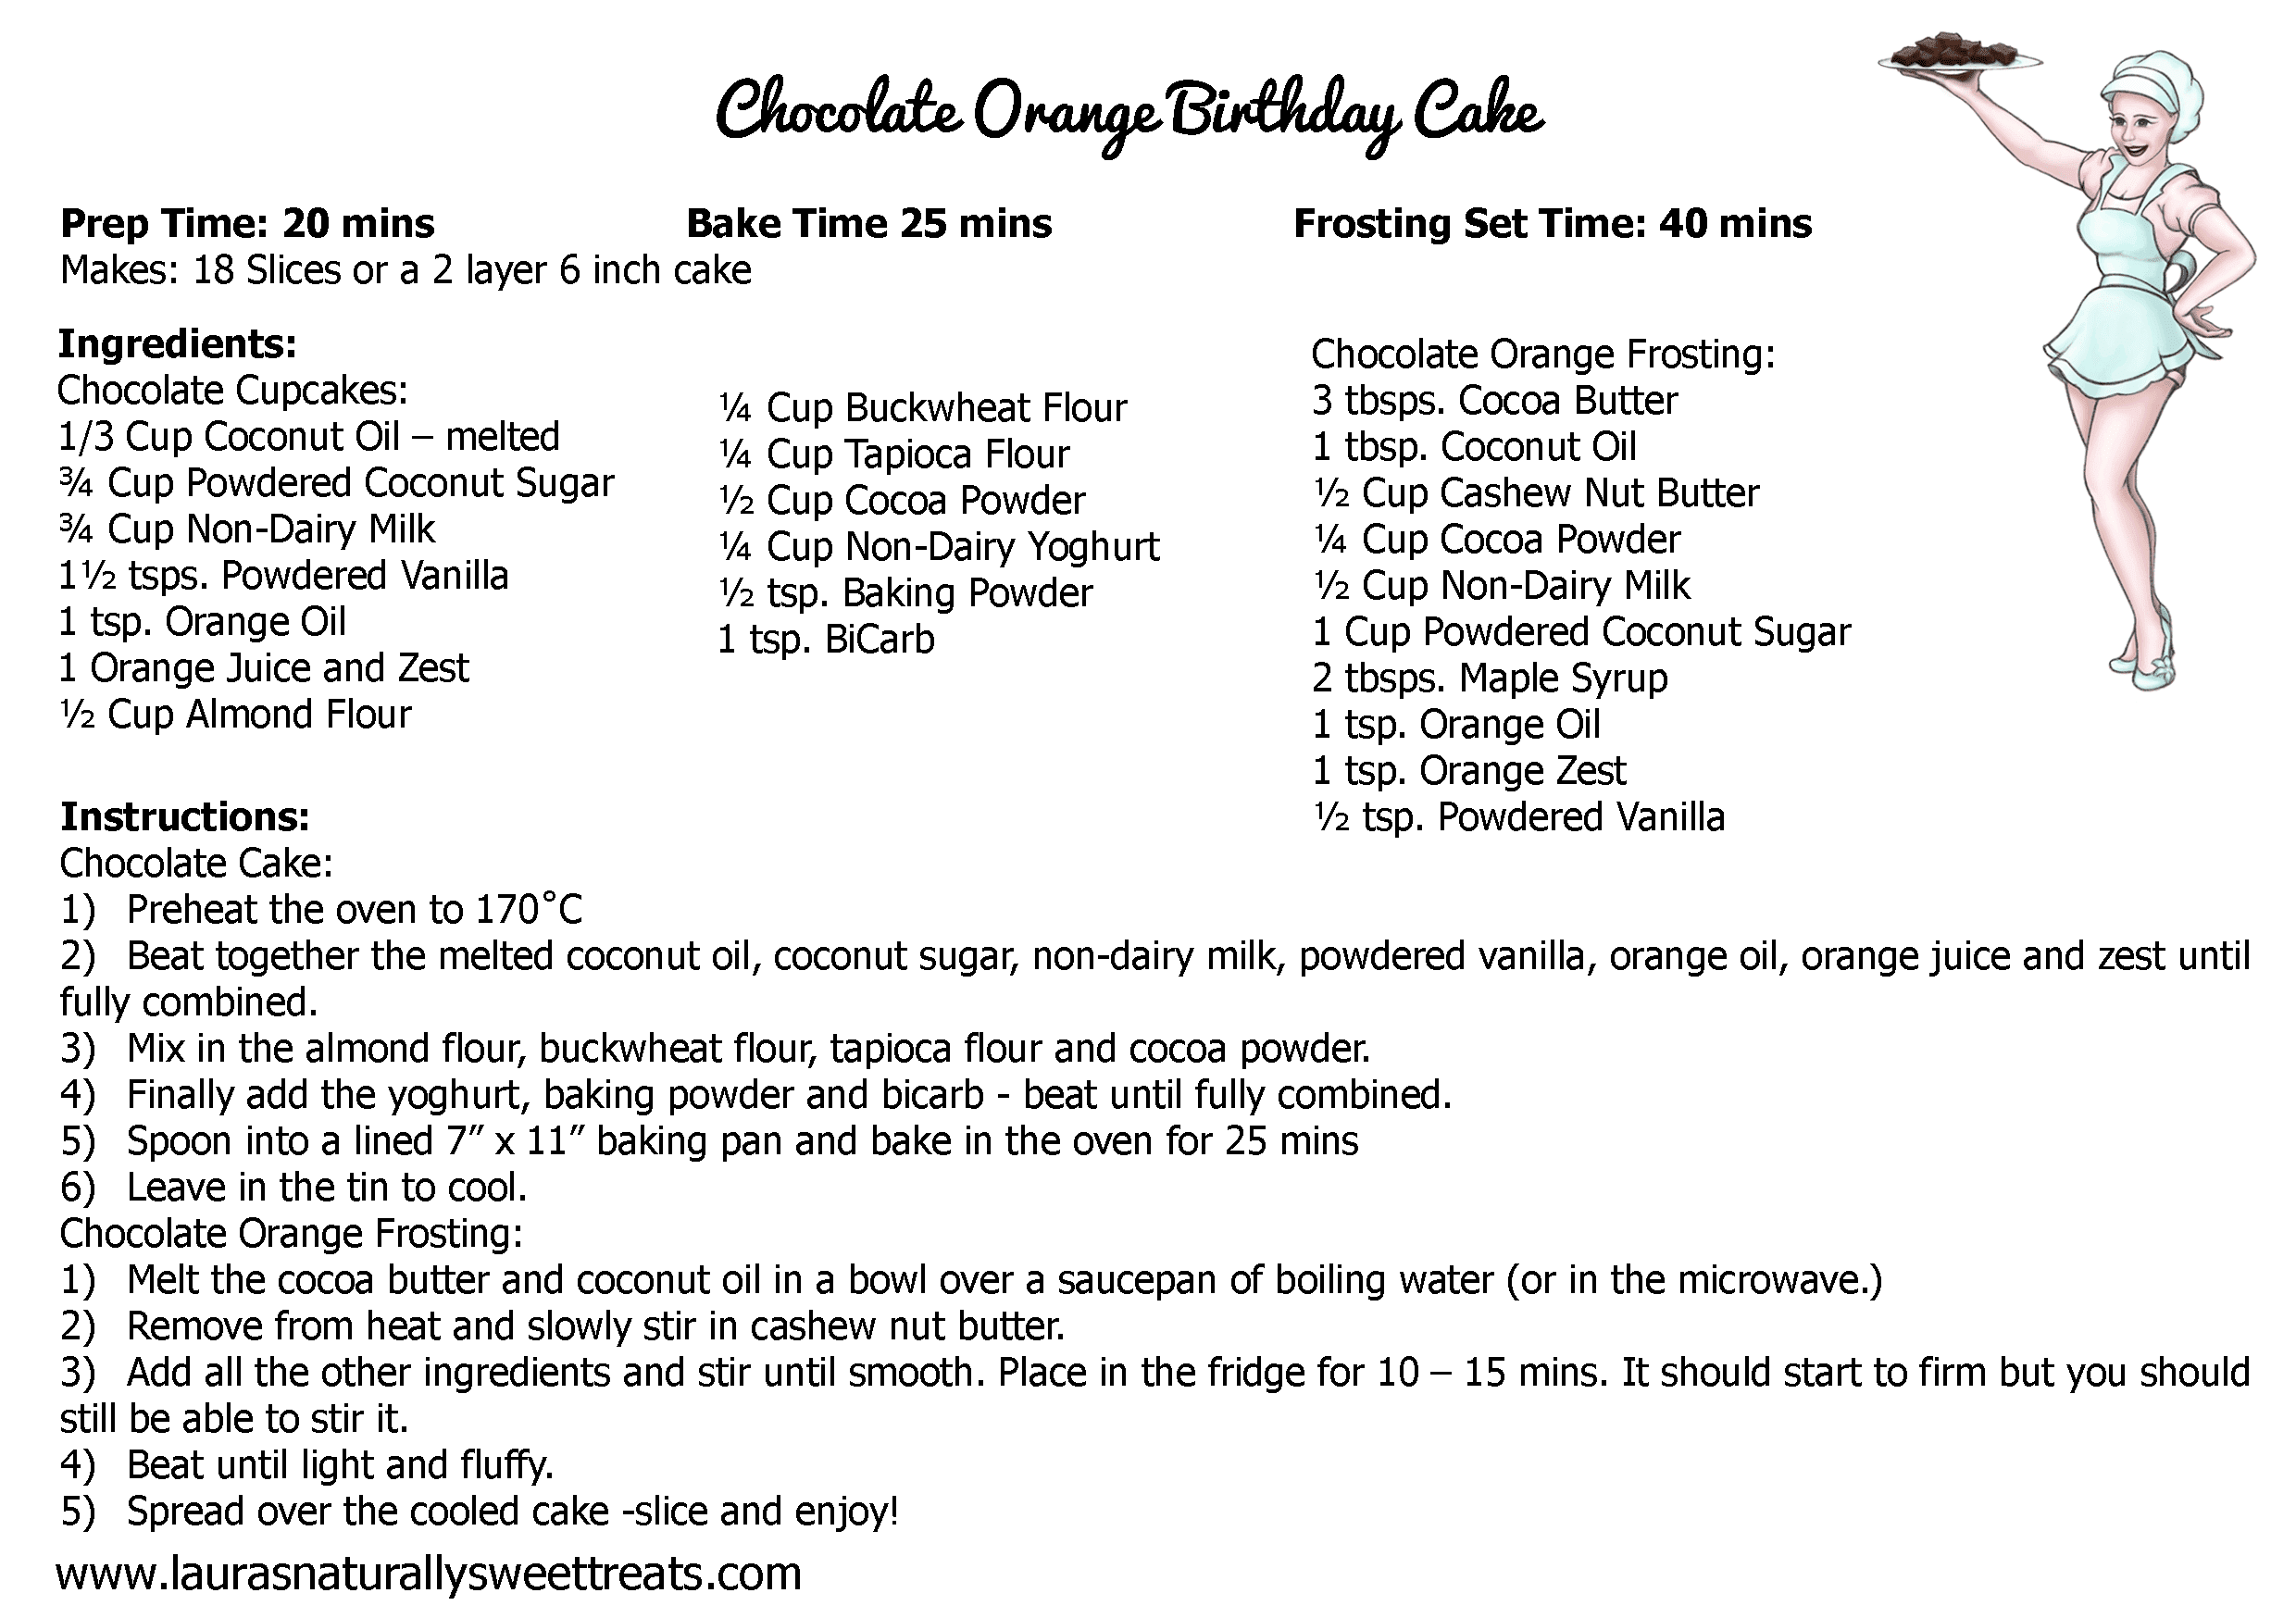 chocolate orange birthday cake recipe card